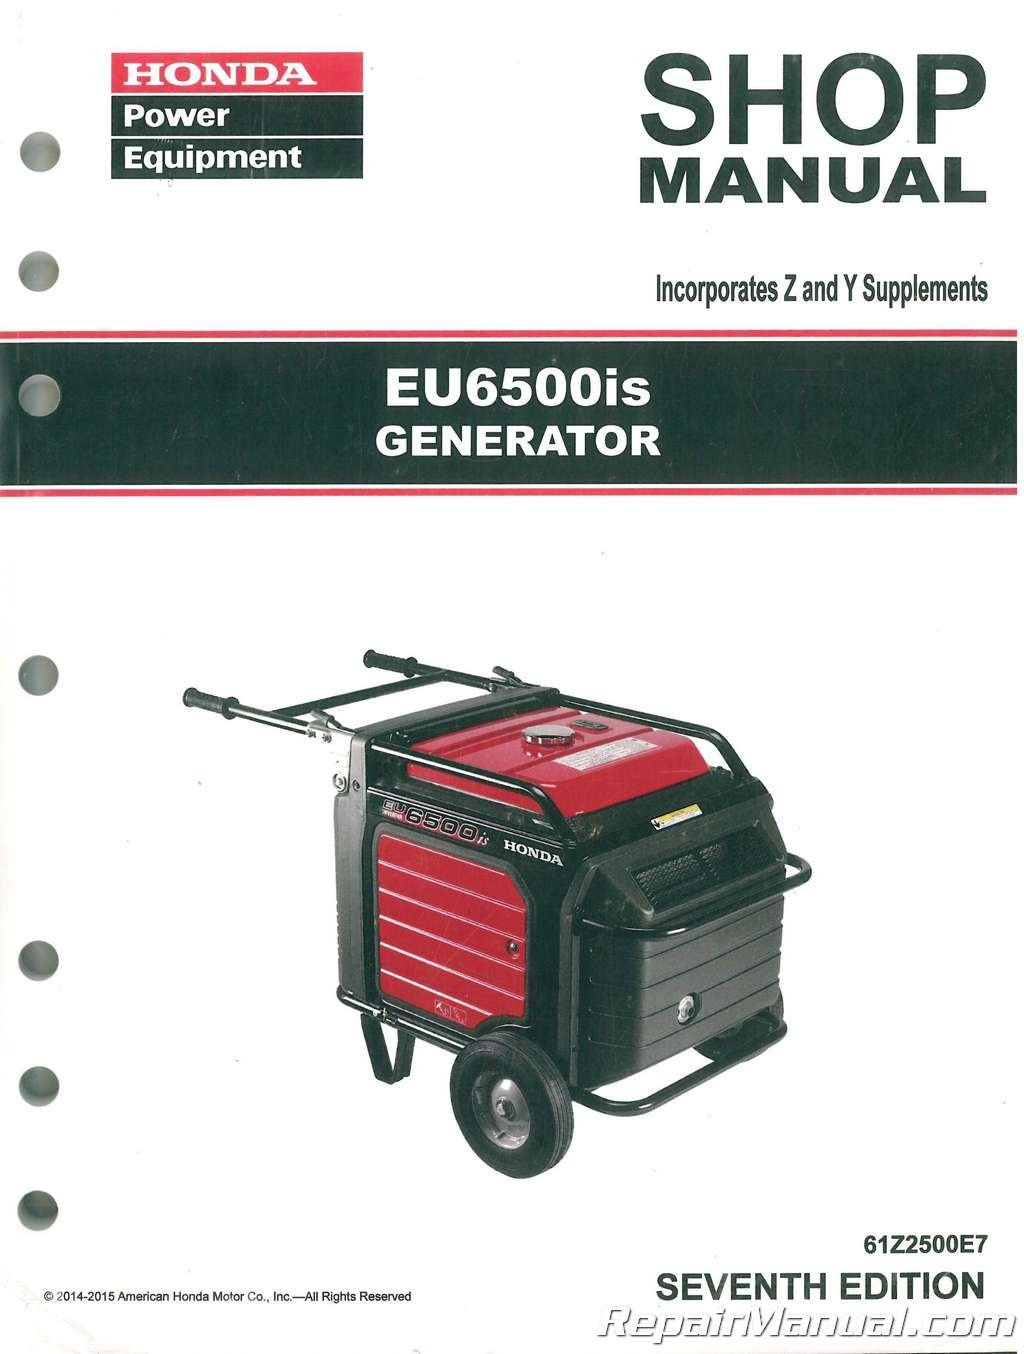 Amazon.com: 61Z2500E7 Honda EU6500 EU6500is Generator Service Repair Shop  Manual: Manufacturer: Books